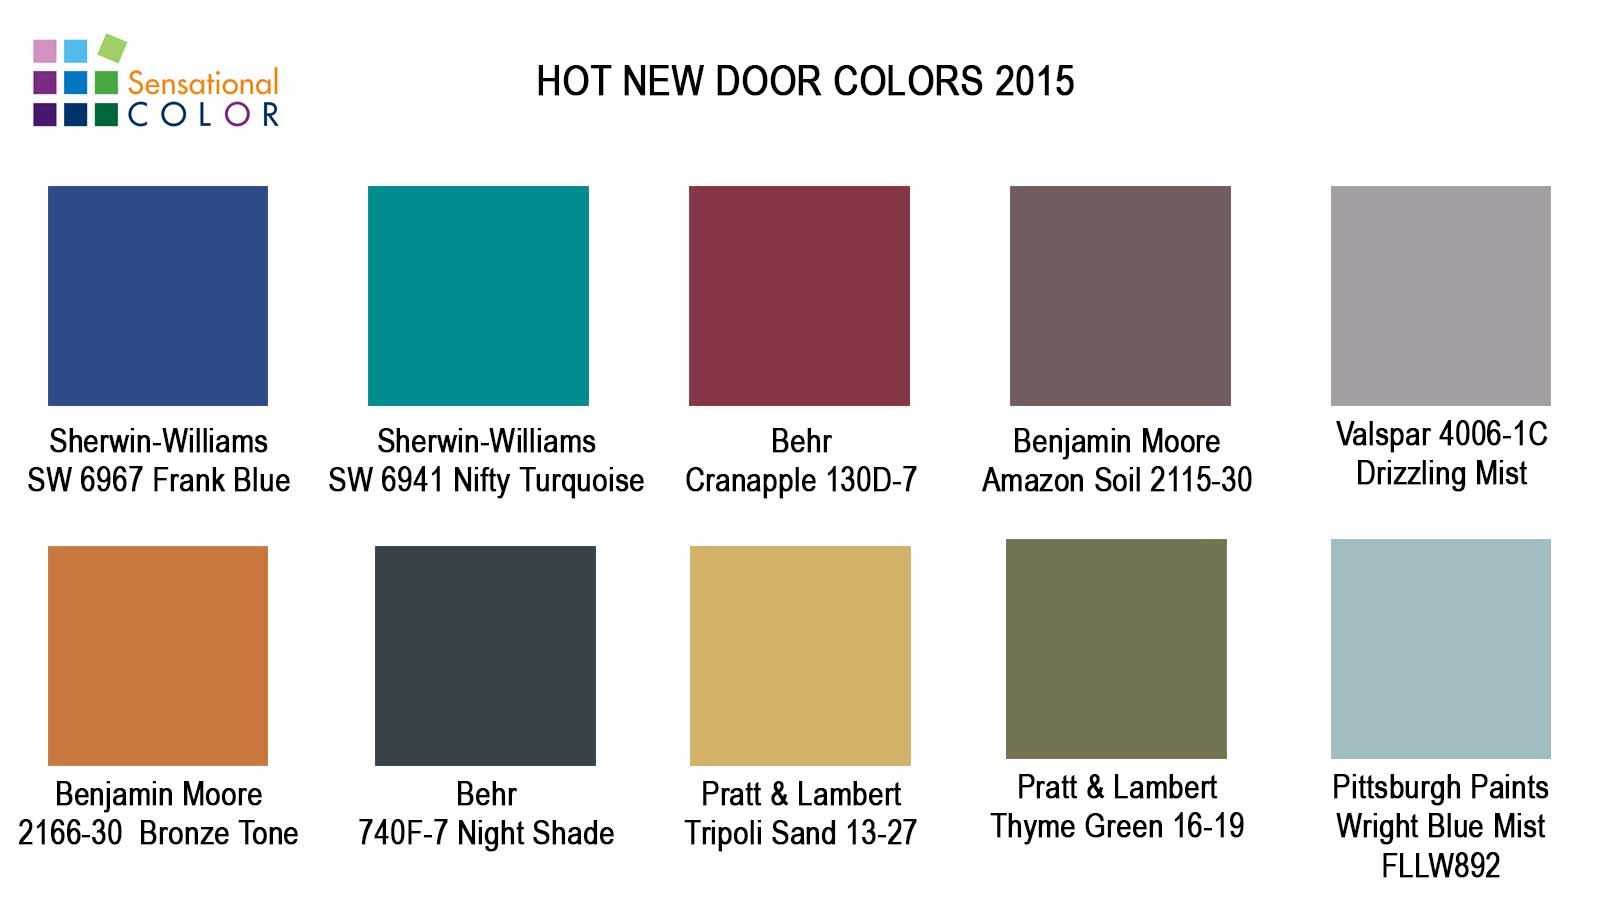 Top 10 Hot New Door Colors for 2015. Five of the colors are bold and Exterior Paint Colors on decorating colors 2015, kitchen colors 2015, granite colors 2015, carpet colors 2015, bedrooms colors 2015, interior colors 2015, garage door colors 2015, exterior home 2015, front door colors 2015, wood colors 2015, bathroom colors 2015,